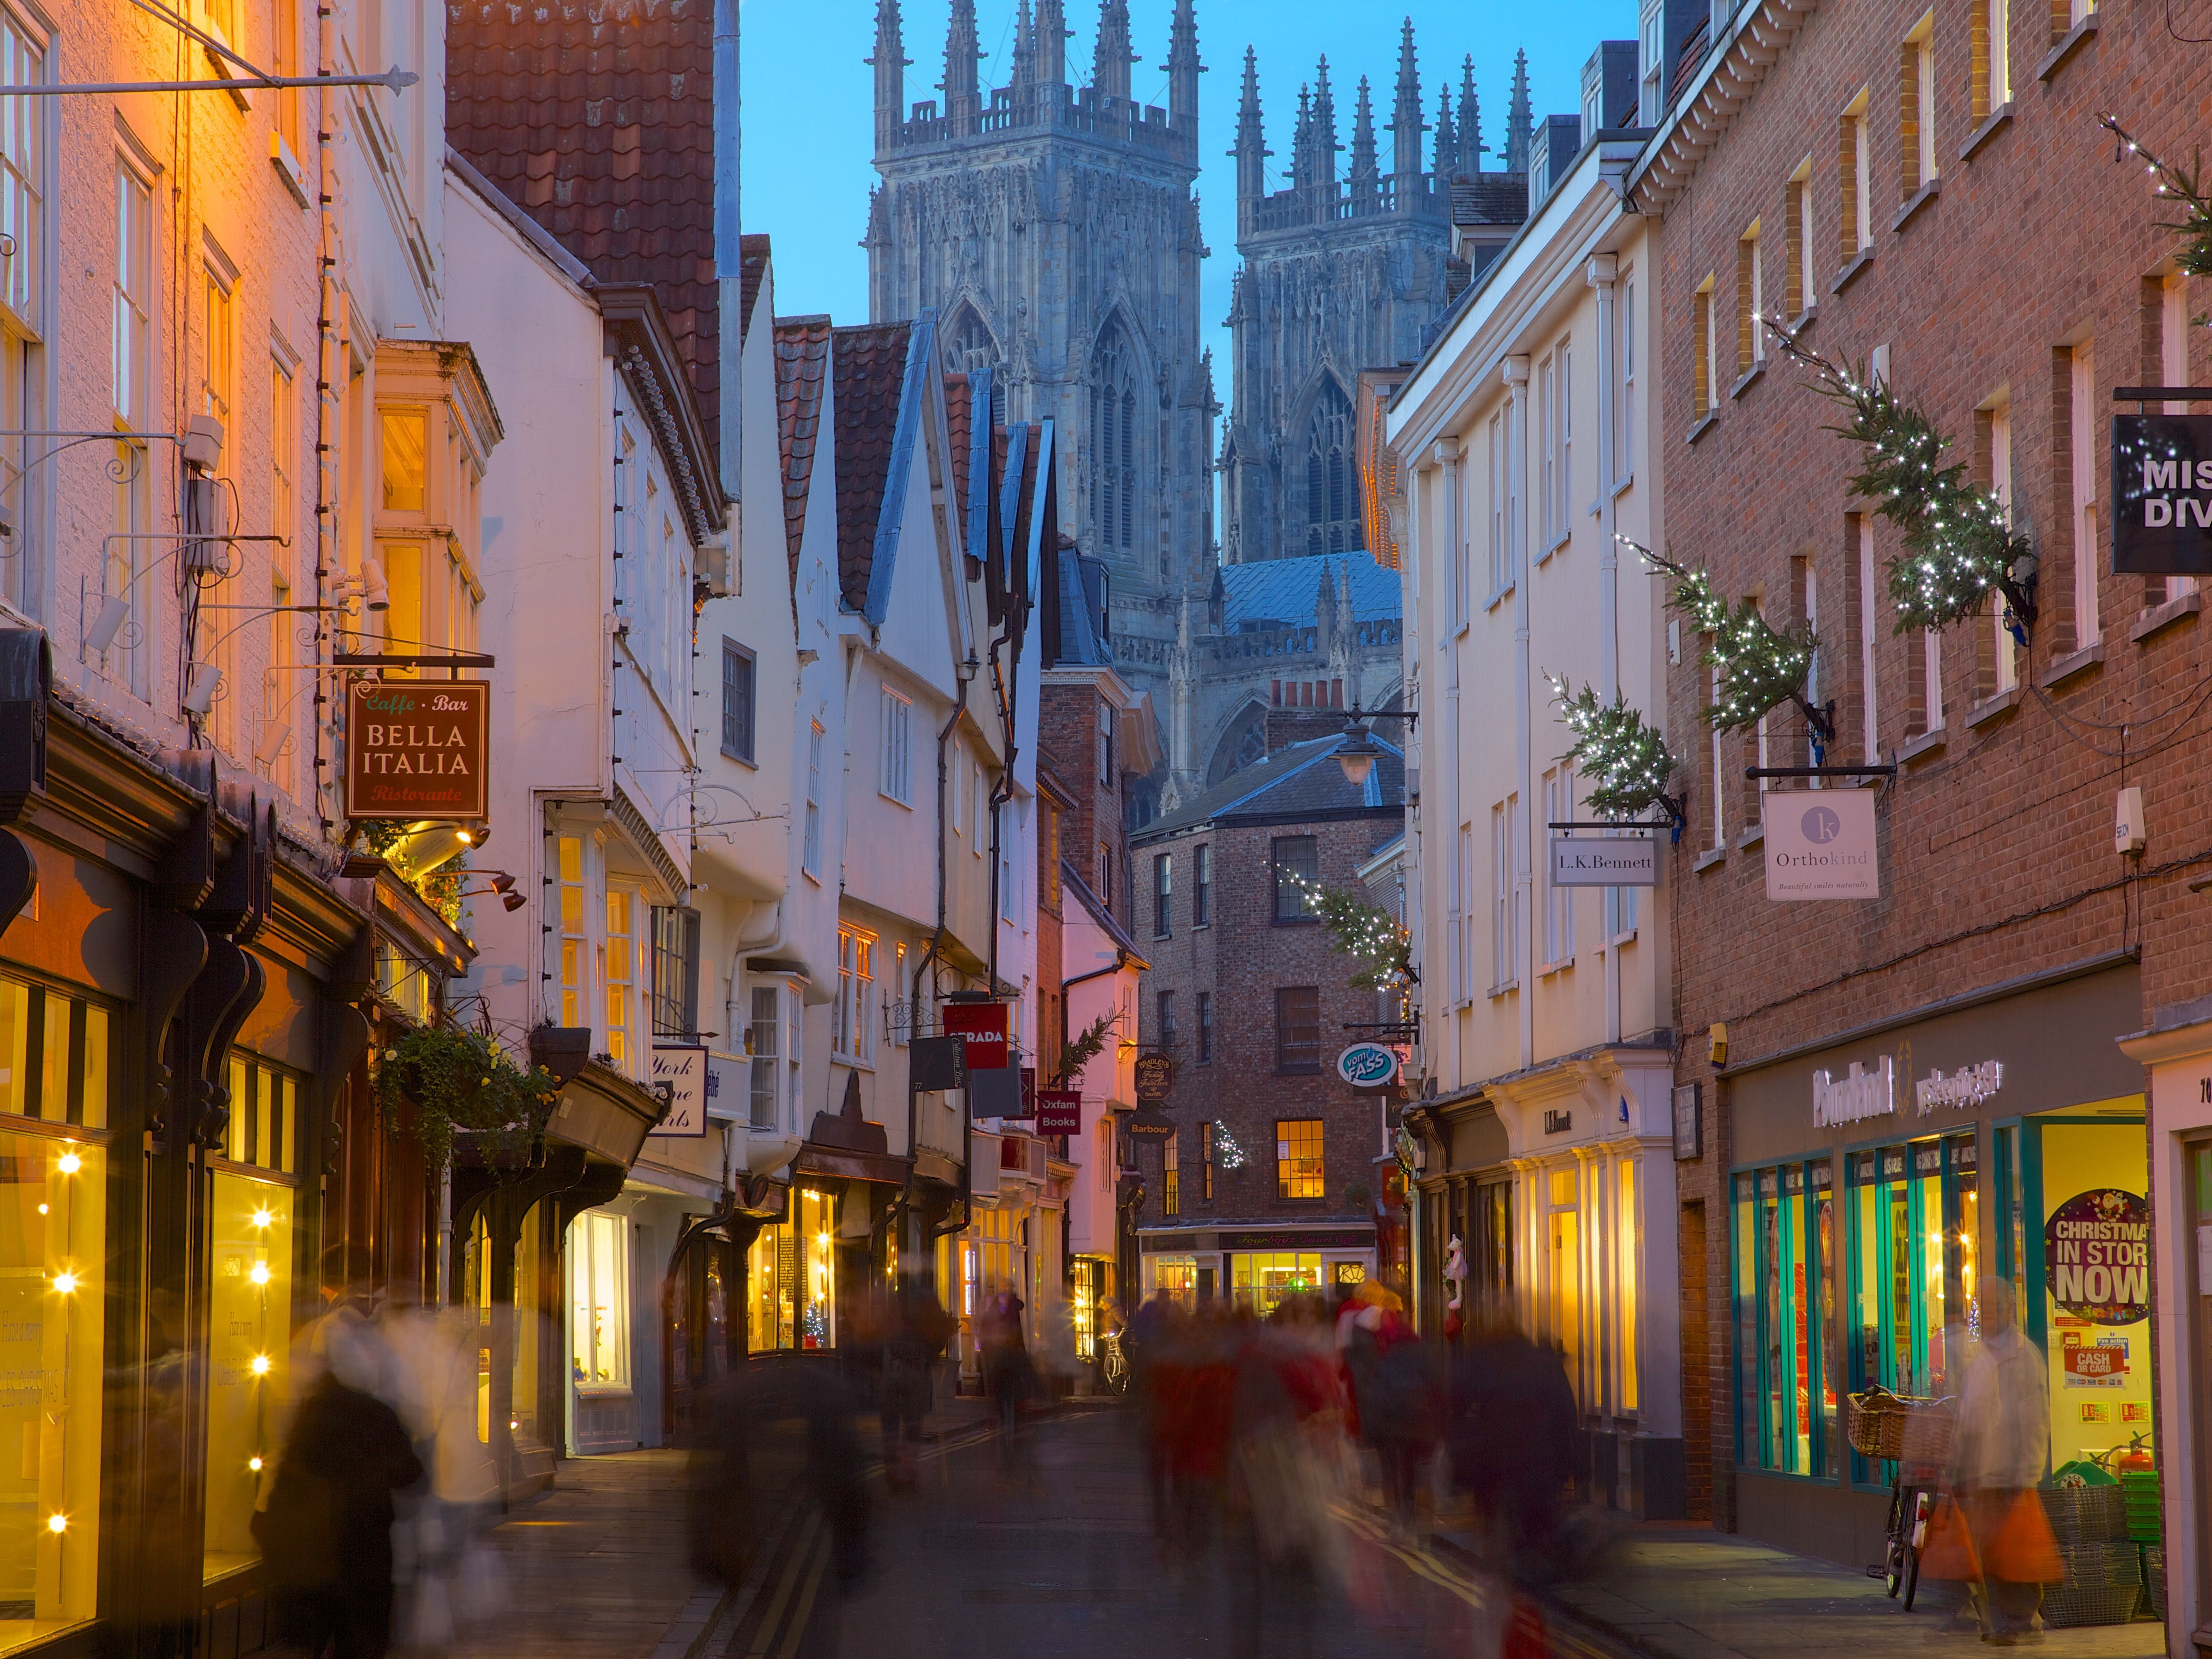 England Christmas.Christmas Markets And Events In Medieval York England